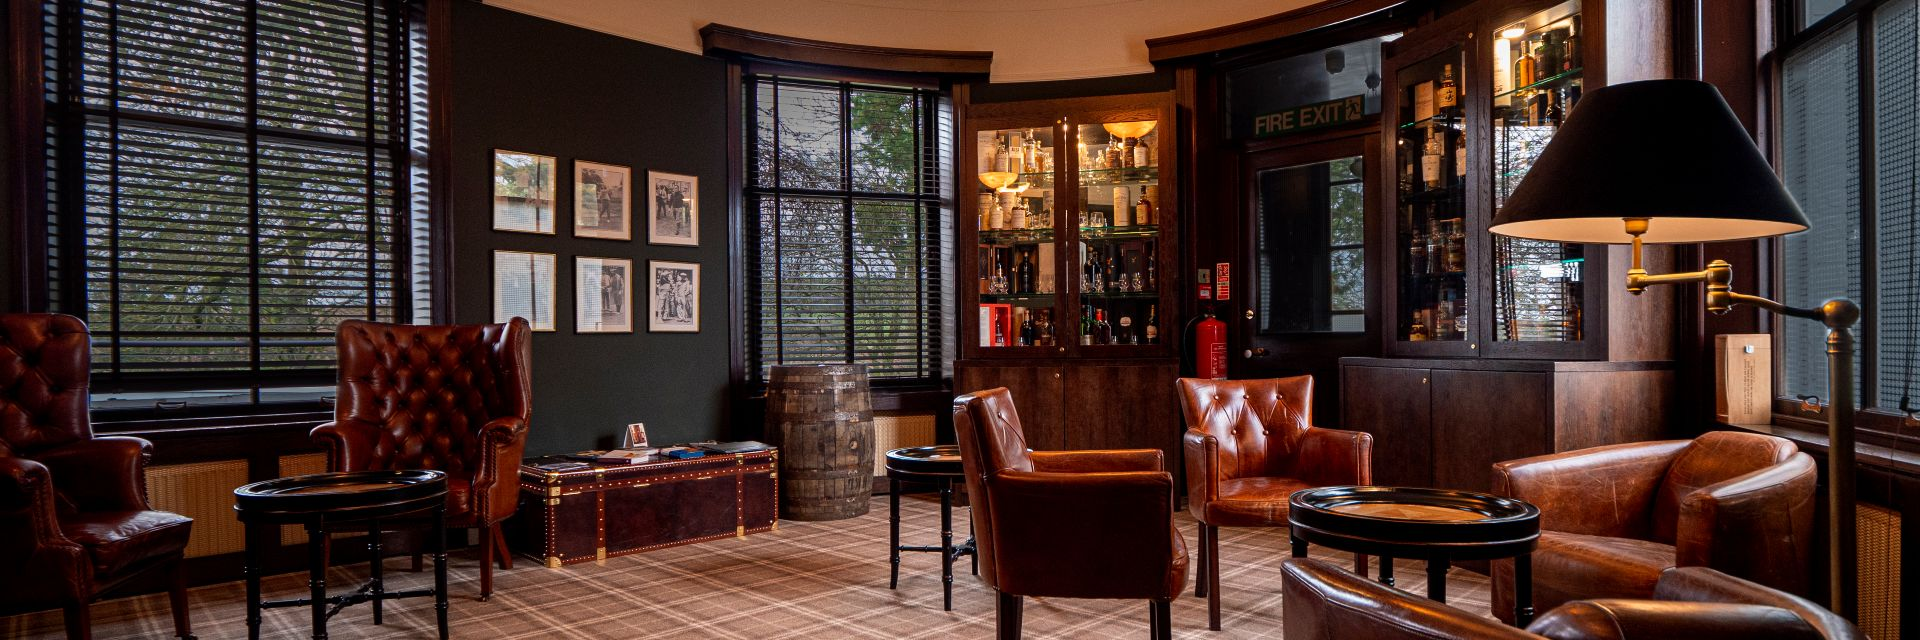 Glenfiddich Whisky Library